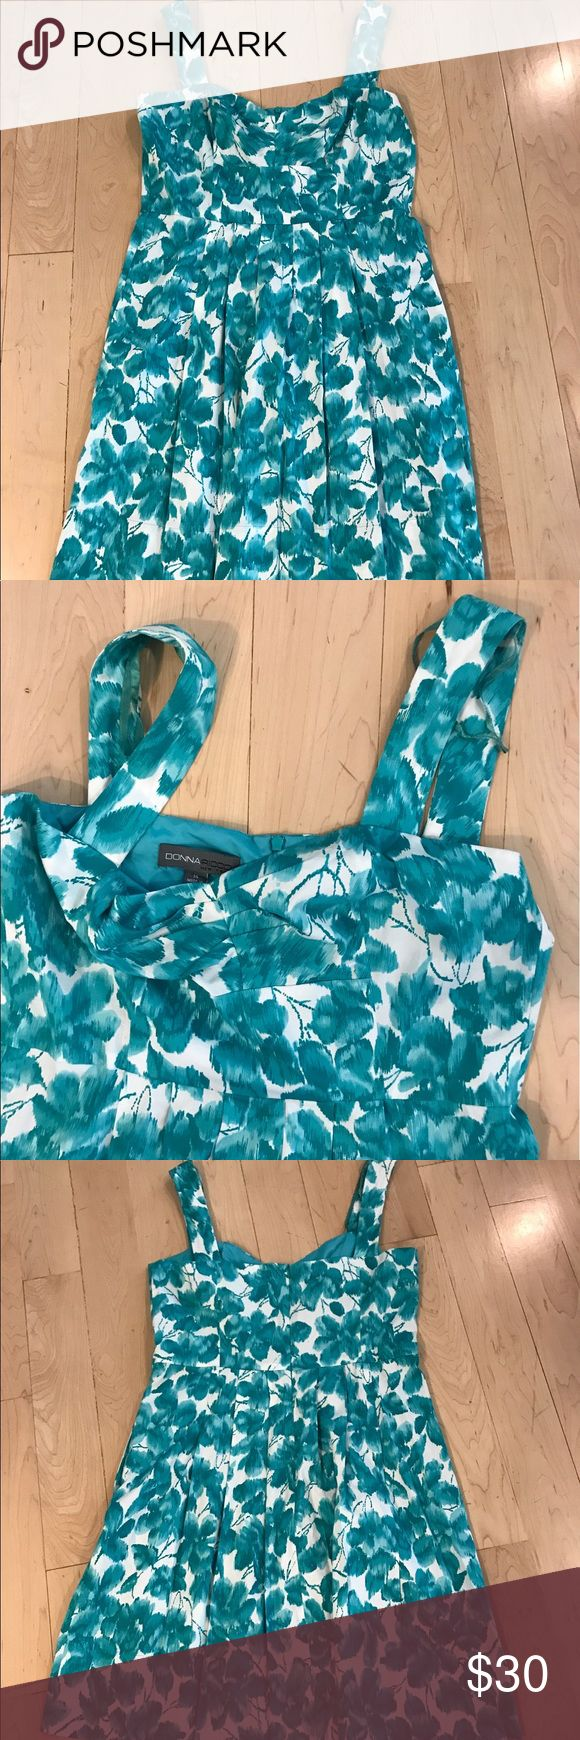 Donna Ricco teal floral dress size 14 Donna Ricco floral teal sundress in size 14. Lined. Back zip. Bust: 44 inches. Waist: 35 inches. Length: 40 inches. Donna Ricco Dresses Midi